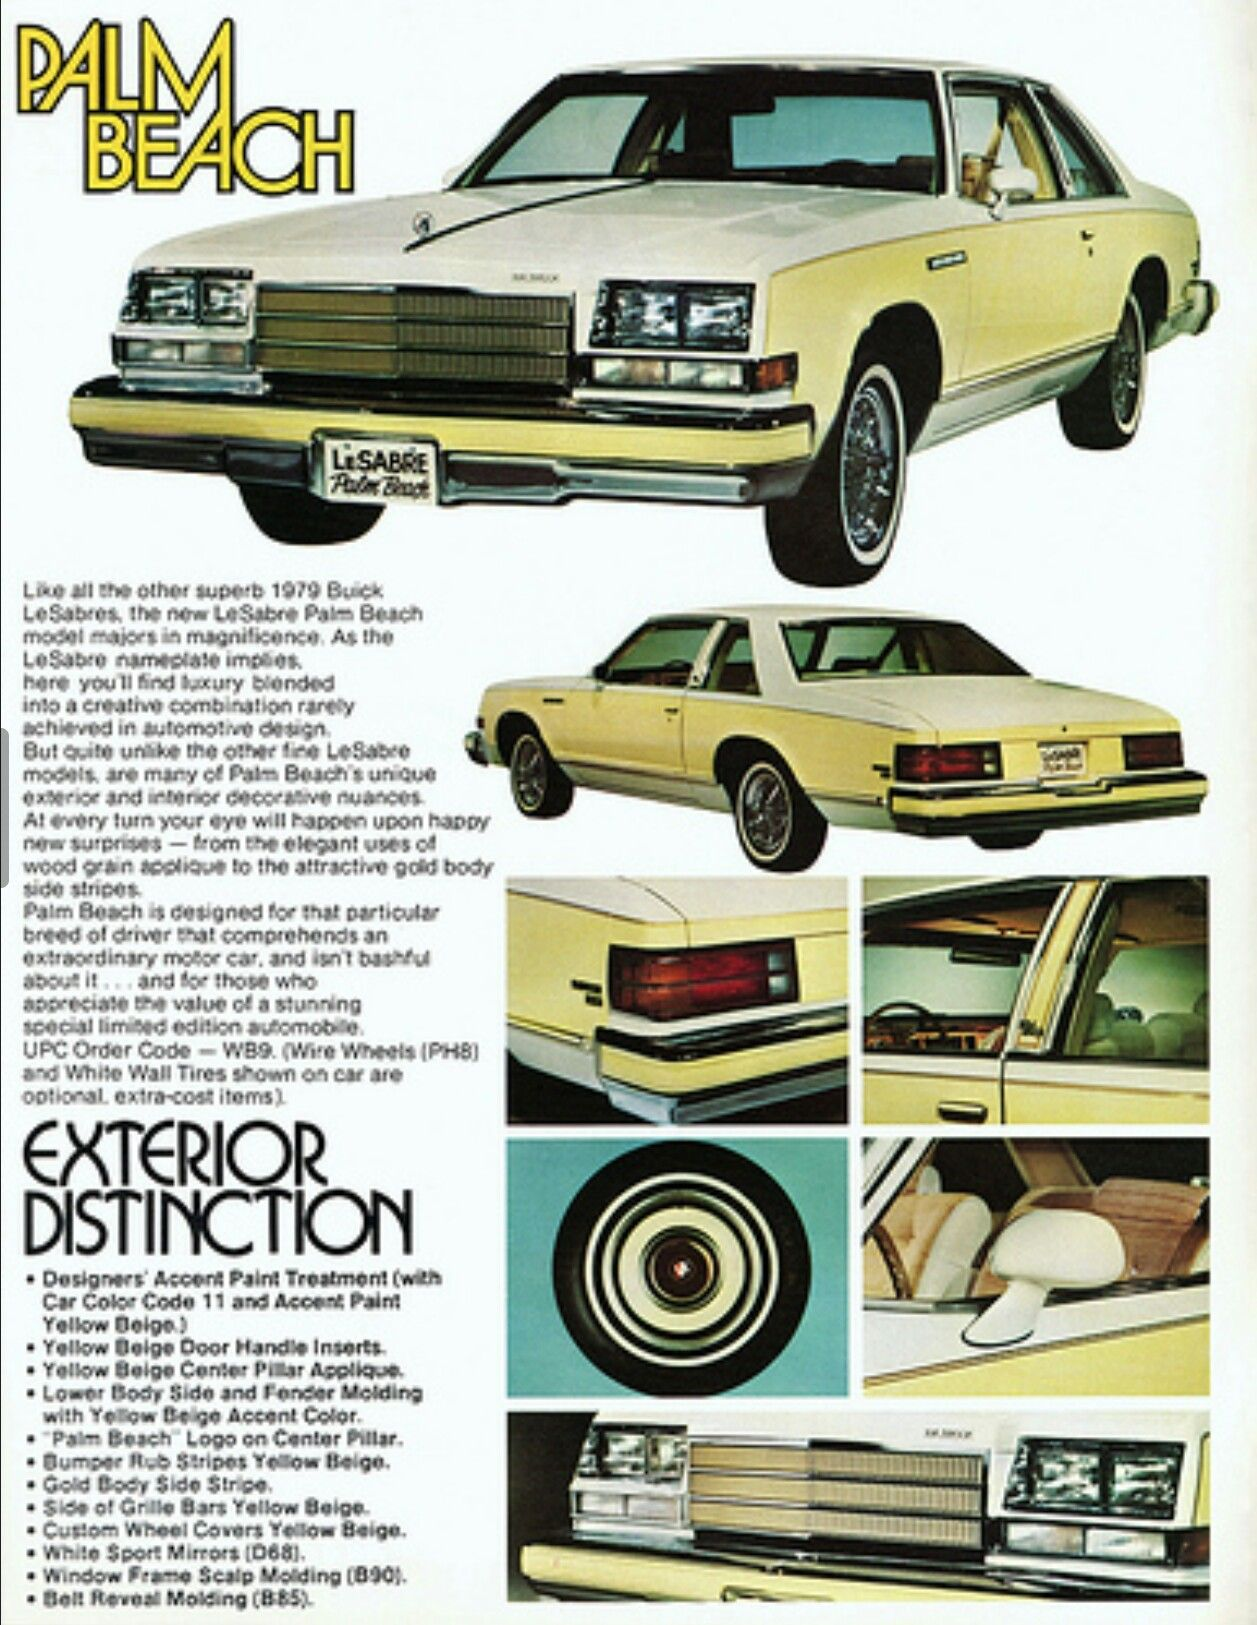 1979 buick lesabre palm beach le with images buick